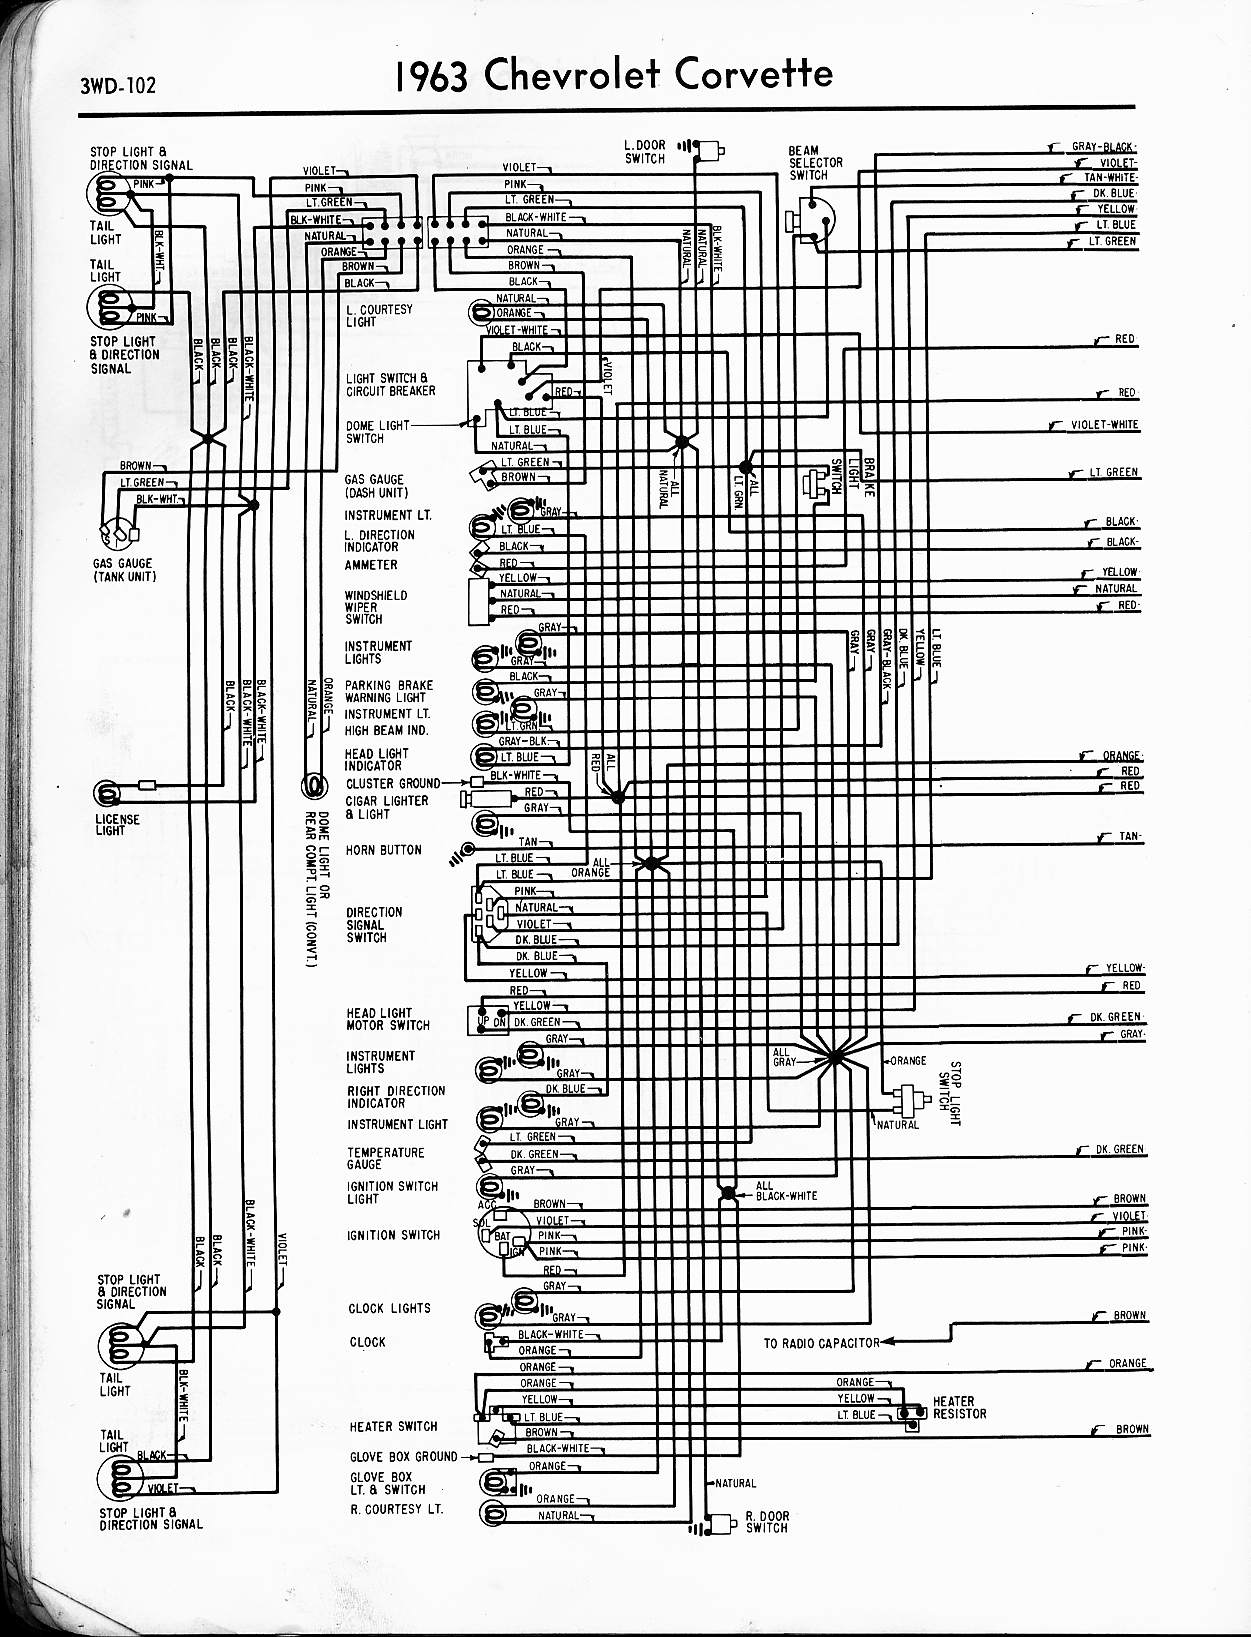 1965 Chevy Corvette Wiring Diagram Diagrams Wiper Motor 85 Ford 57 65 Rh Oldcarmanualproject Com Alternator